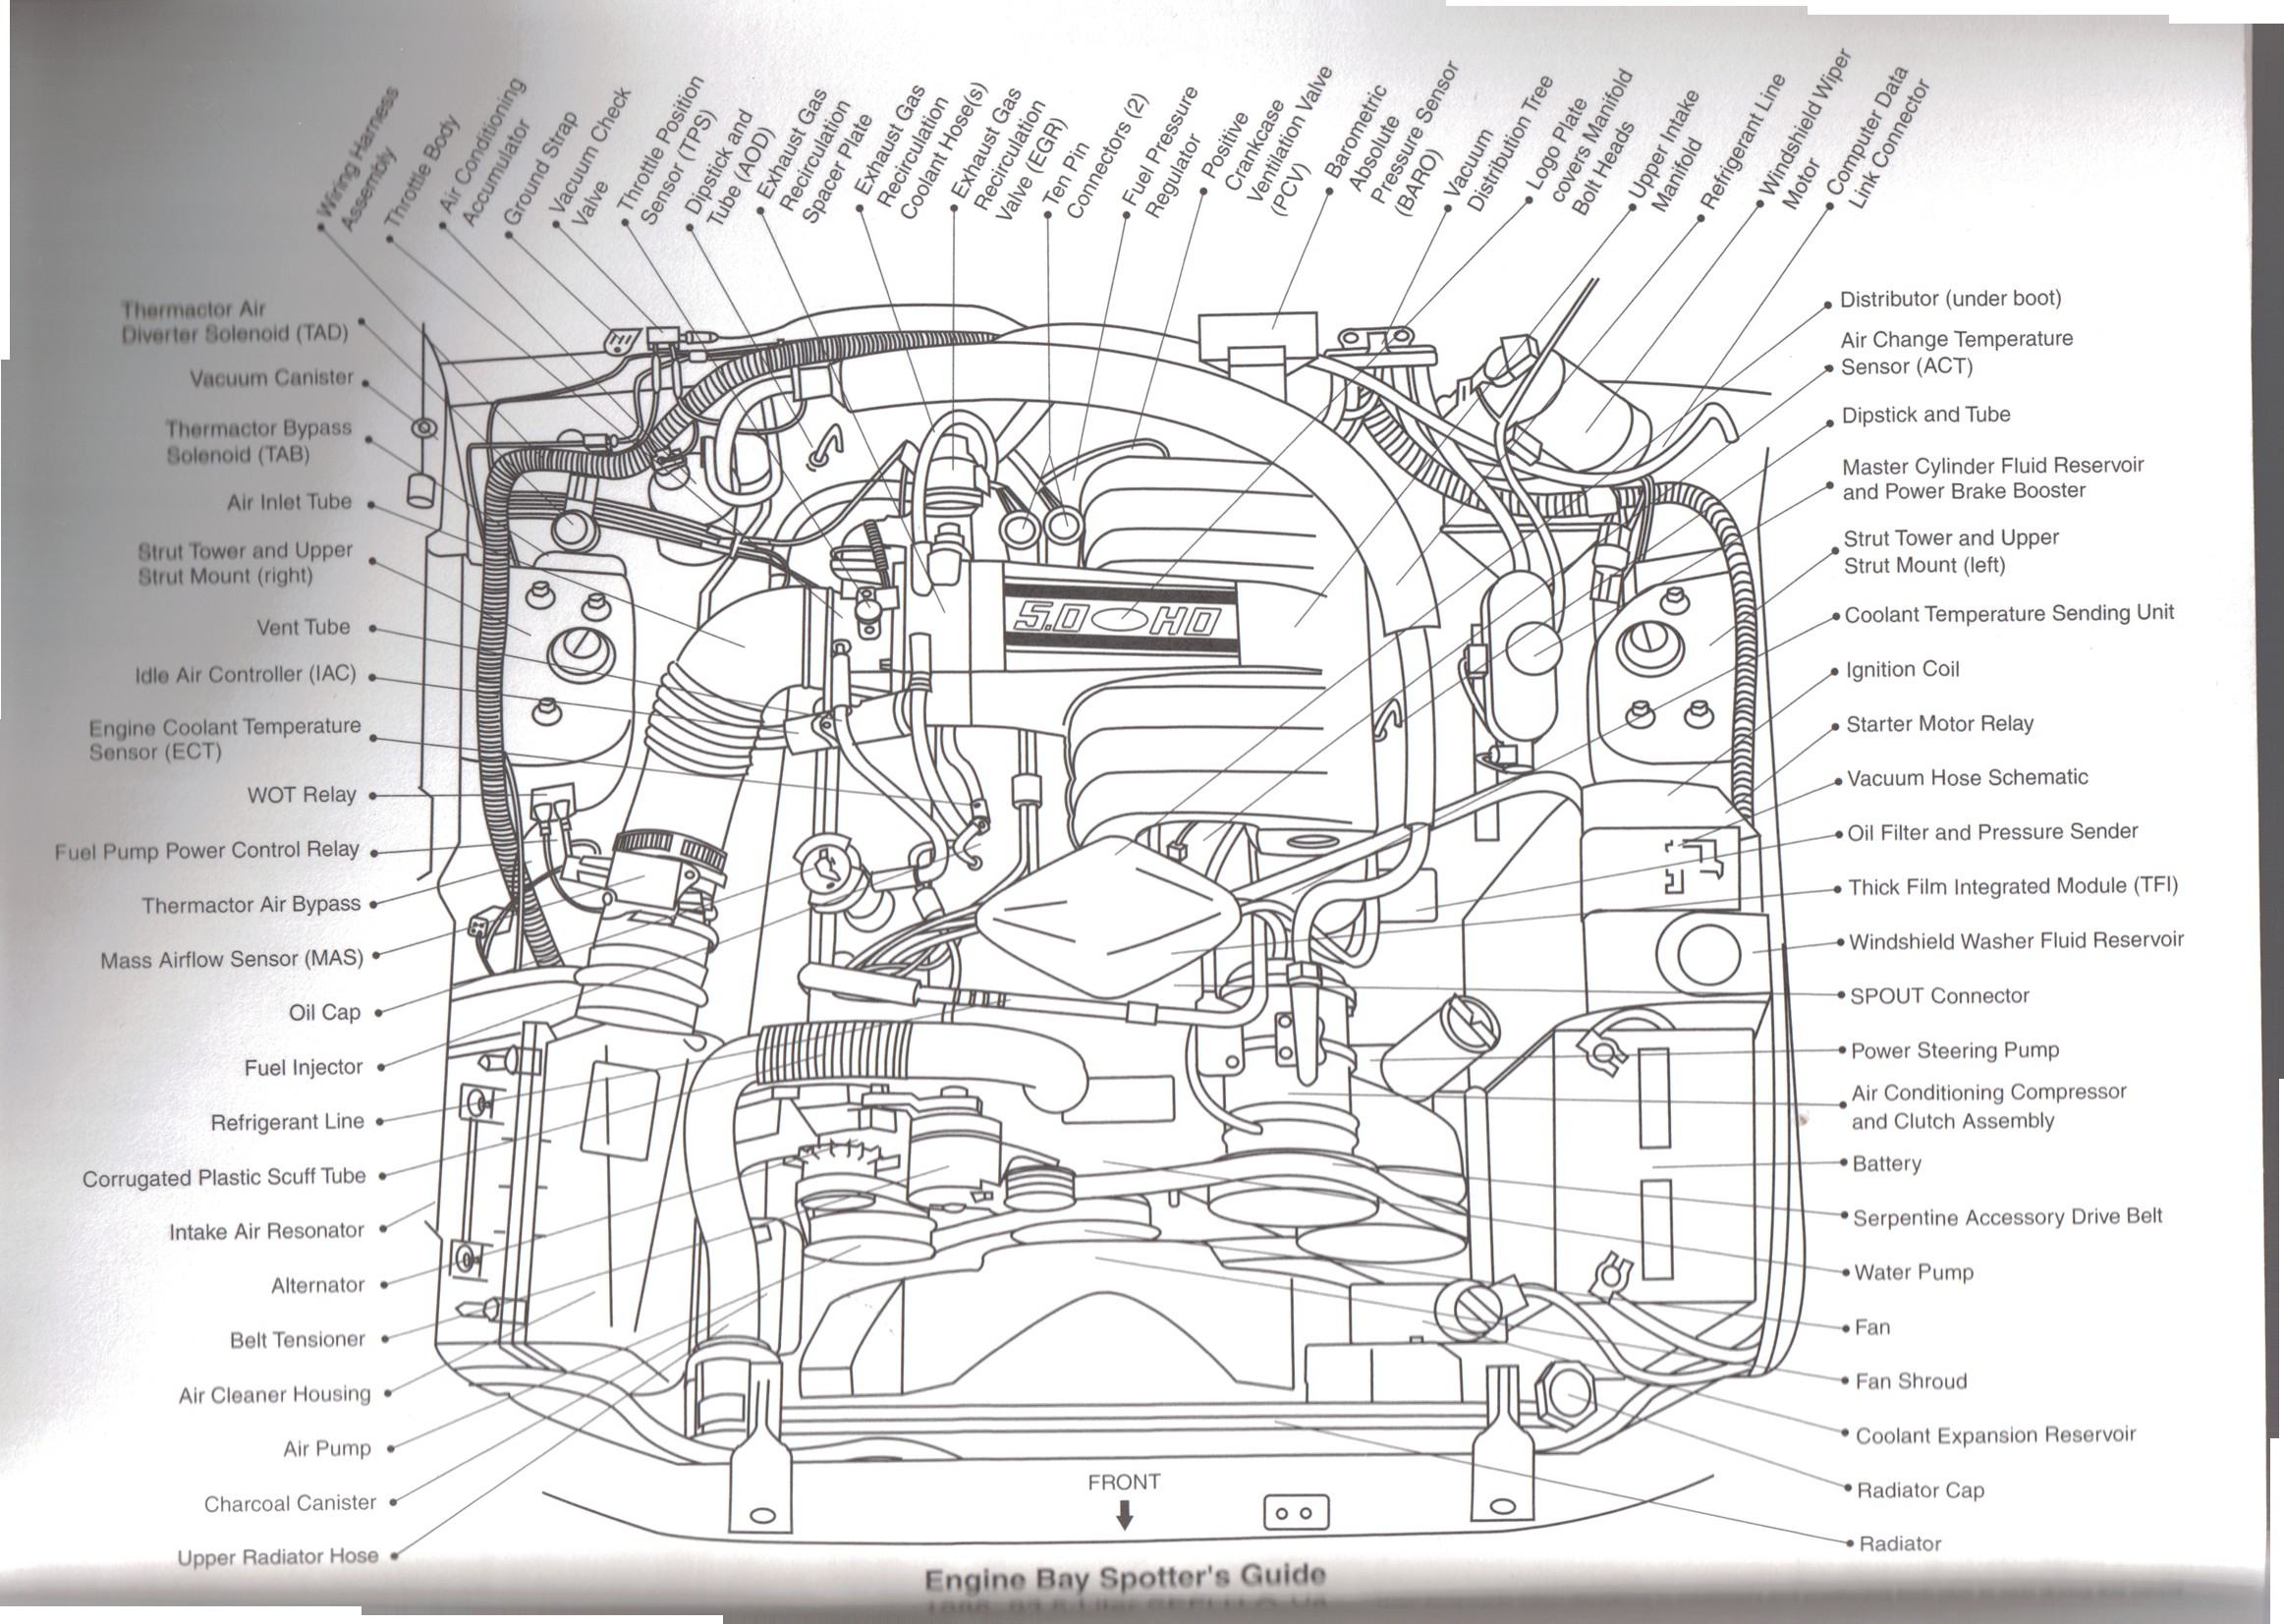 Ford 302 Engine Diagram Fox Body 302 Engine Diagram Wiring Info • Of Ford 302 Engine Diagram